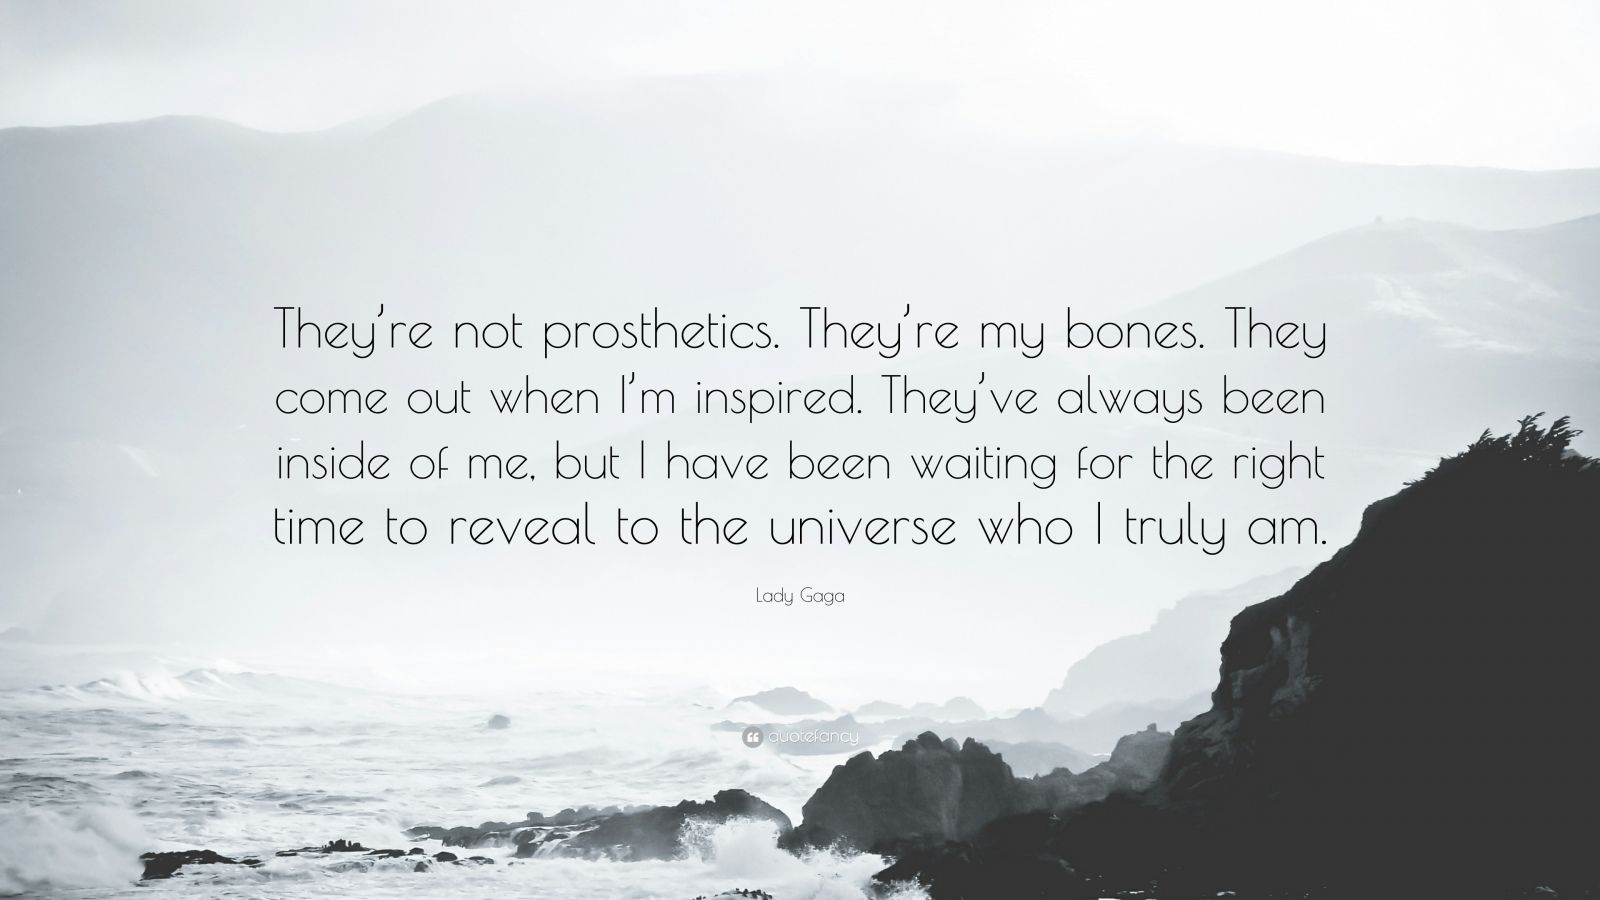 """Lady Gaga Quote: """"They're not prosthetics. They're my bones. They come out when I'm inspired. They've always been inside of me, but I have been waiting for the right time to reveal to the universe who I truly am."""""""